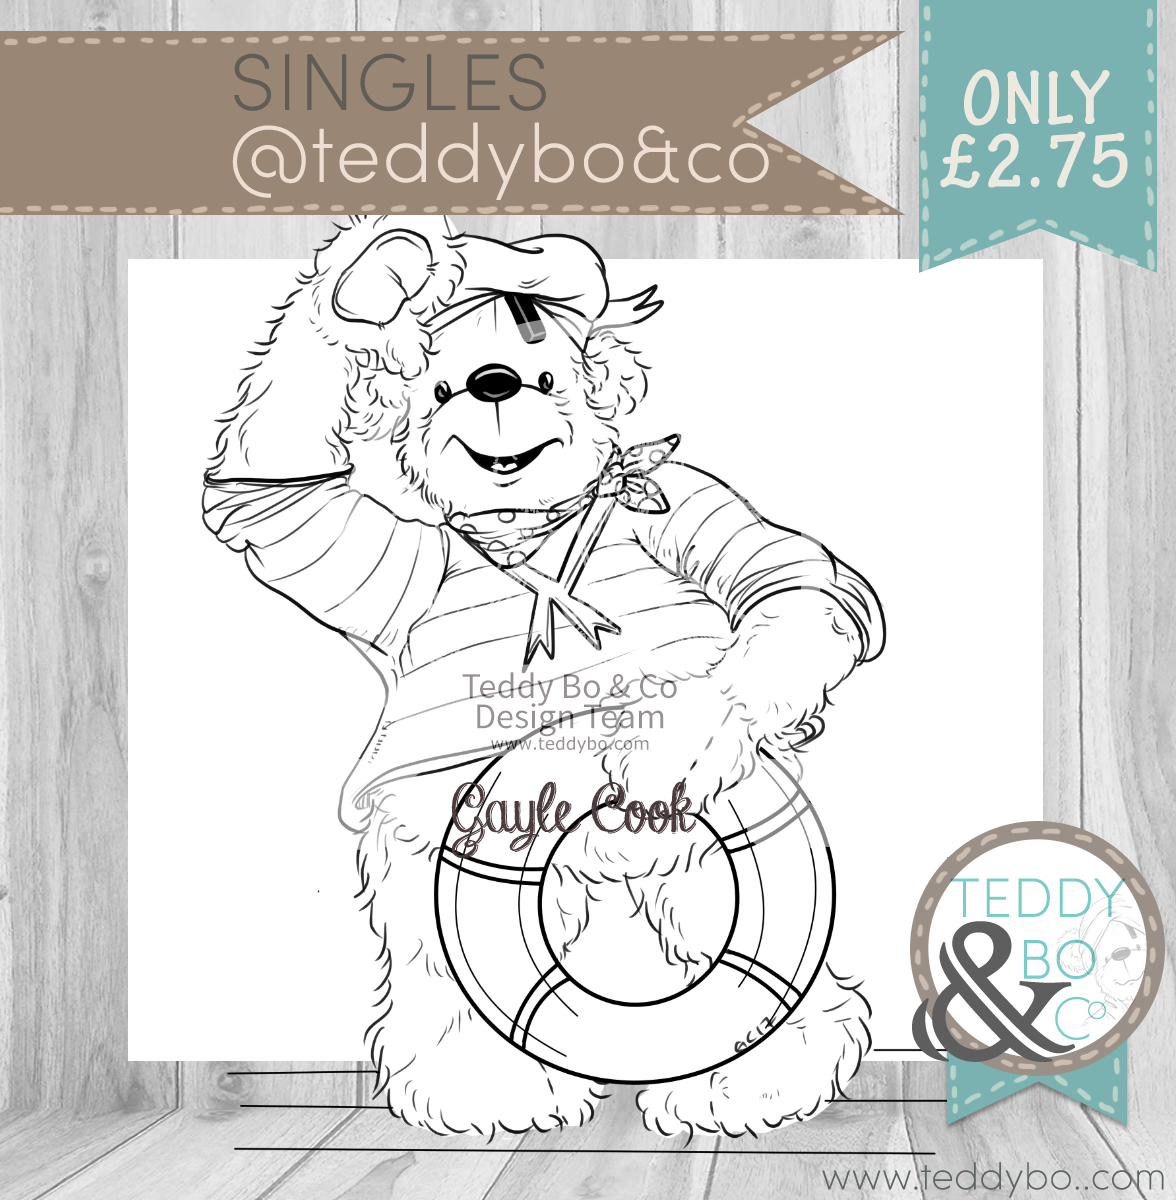 JULY_TEDDYBO_04_02.png